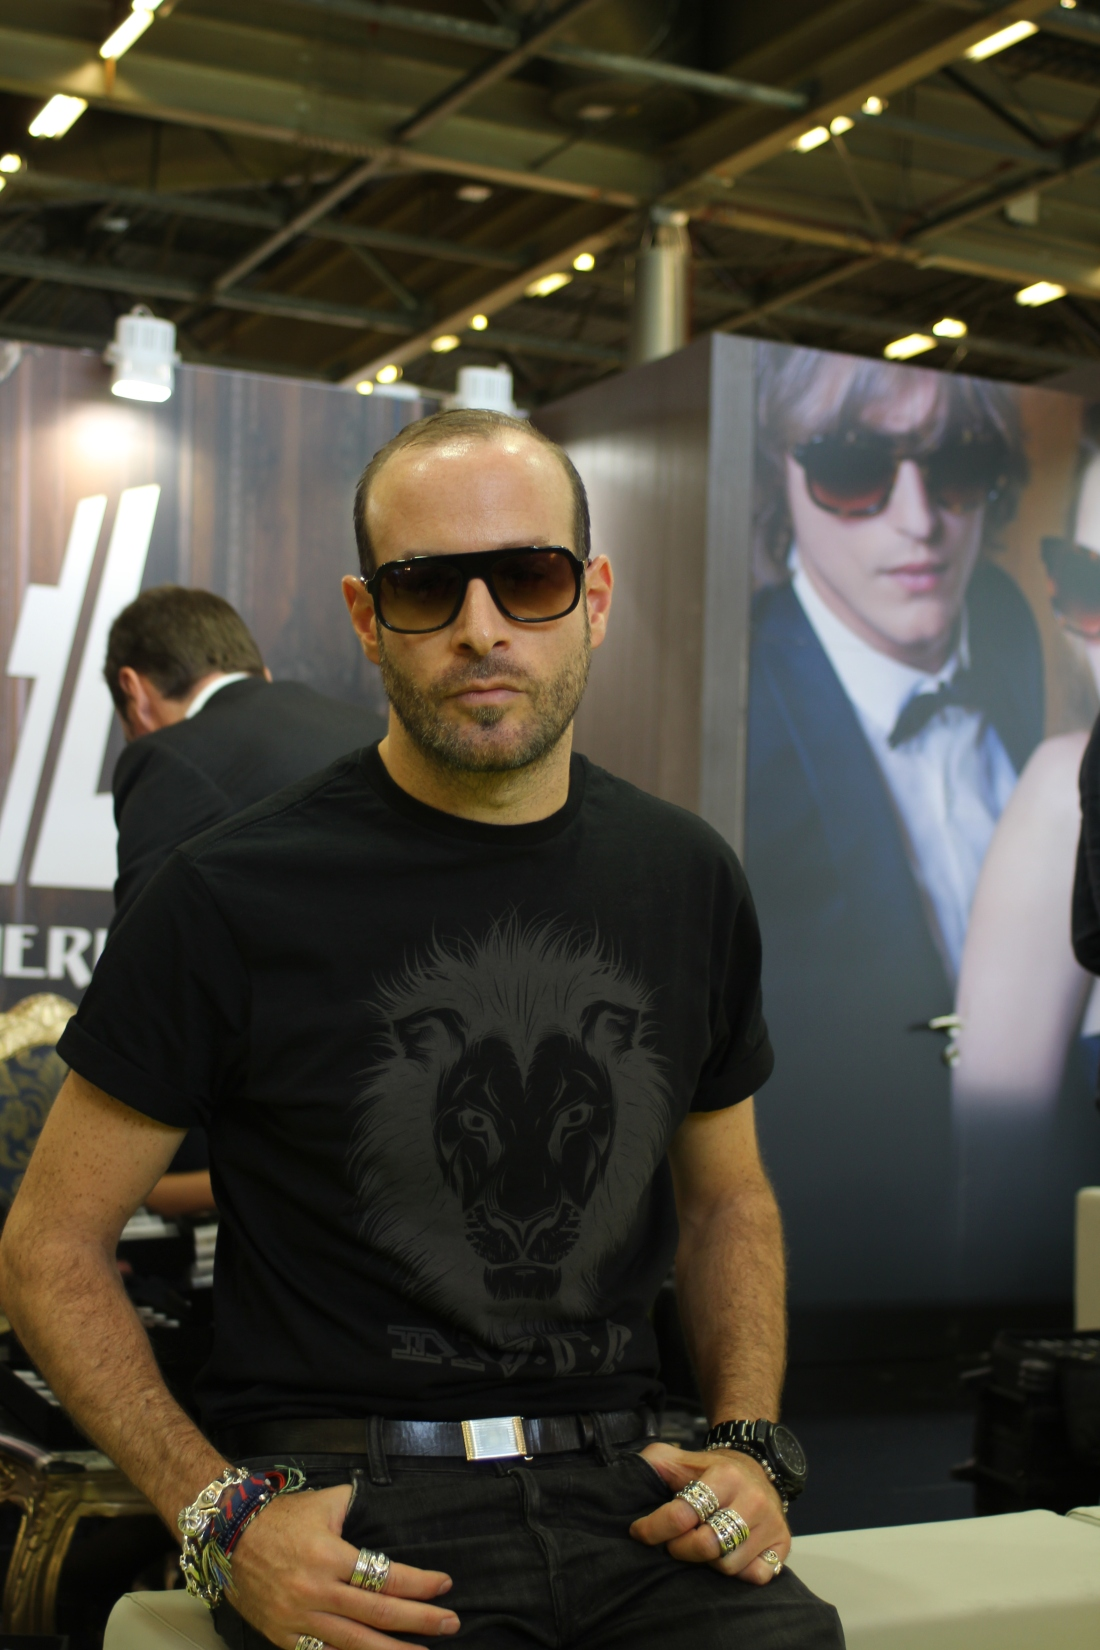 French eyewear designer Thierry Lasry